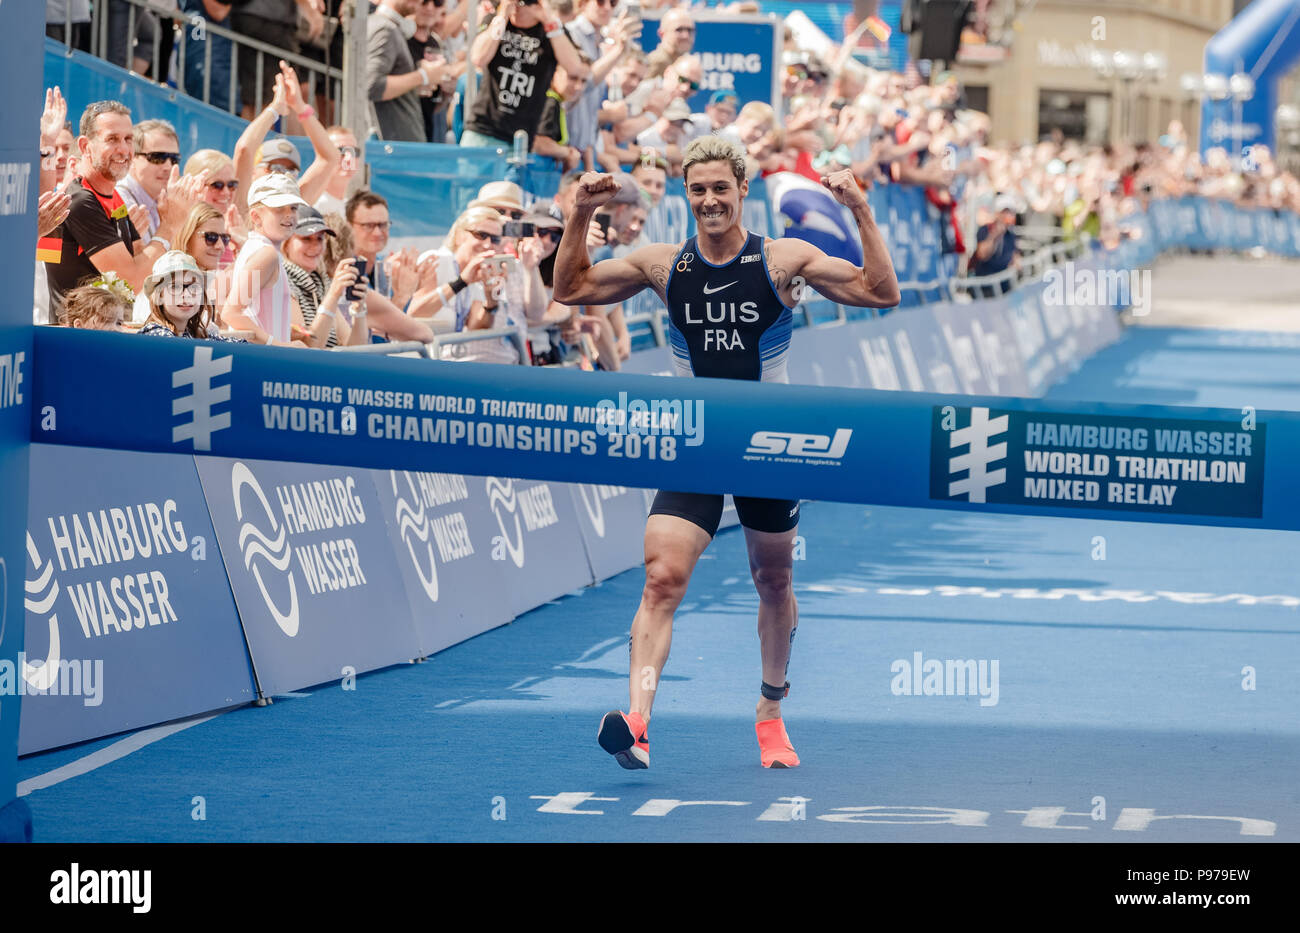 Hamburg, Germany. 15th July, 2018. Vincent Louis of France crosses the finish line first during the Mixed Relay World Championships. Credit: Markus Scholz/dpa/Alamy Live News - Stock Image